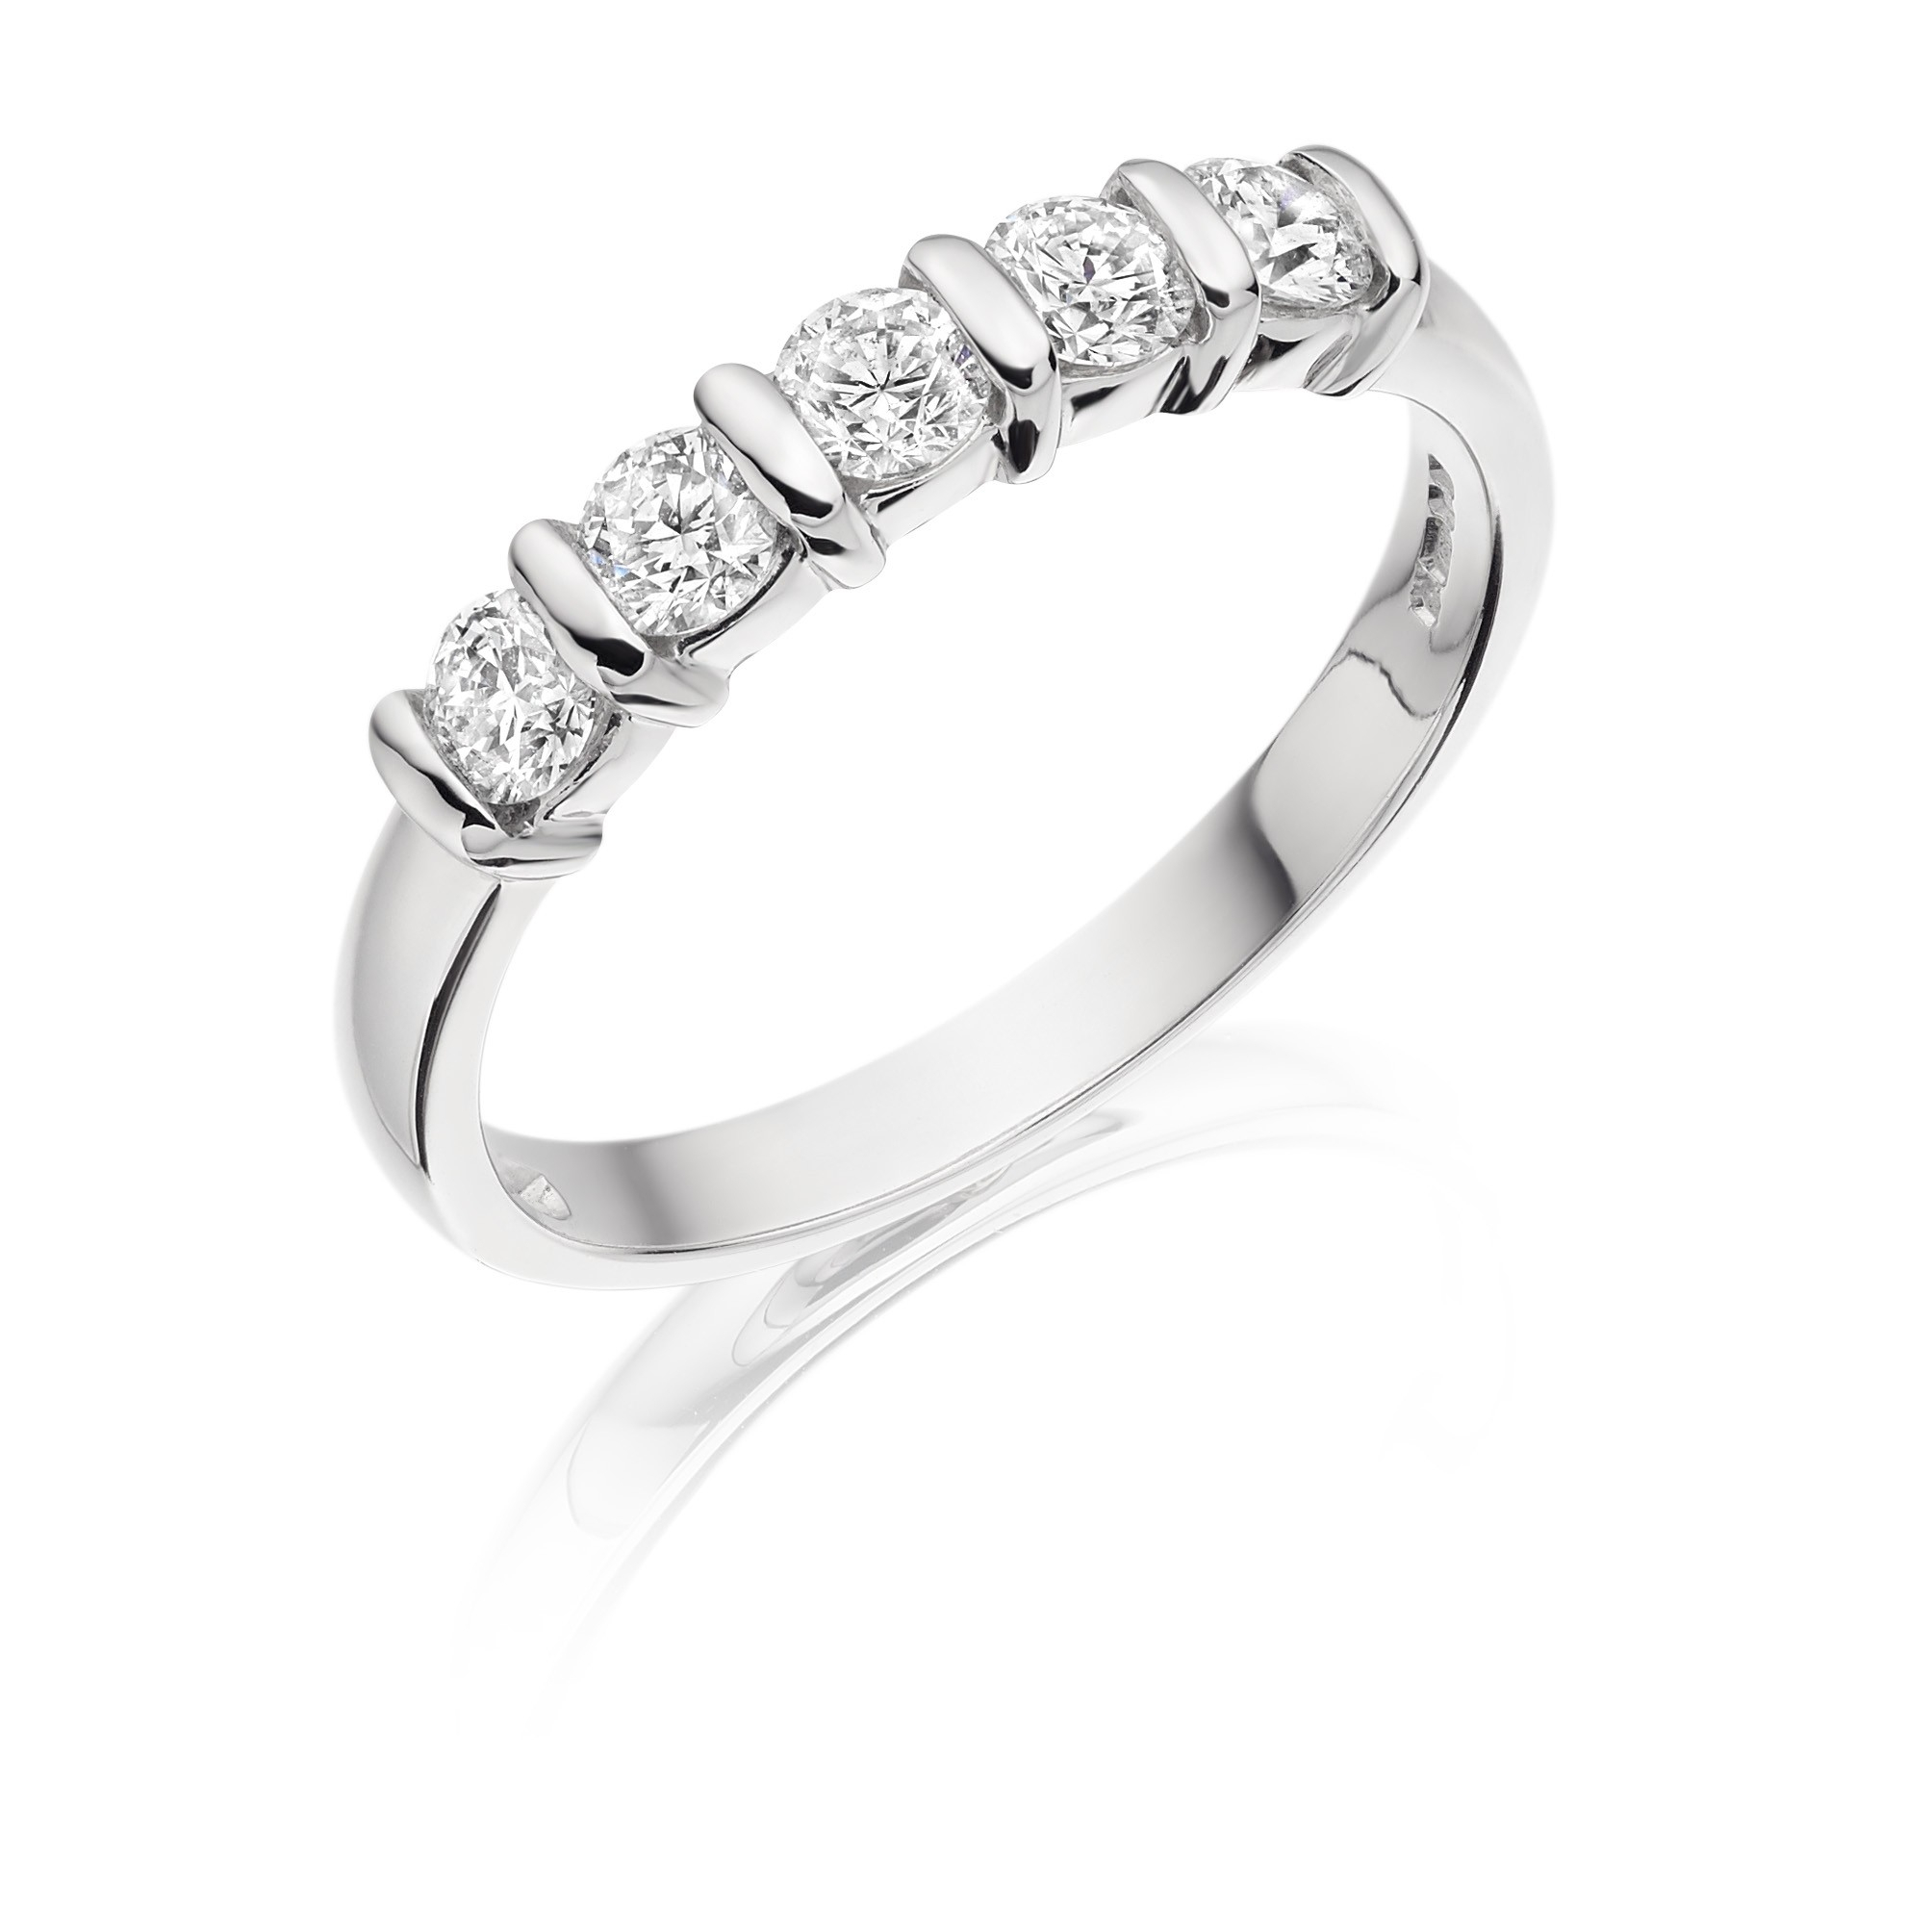 18ct White Gold Five Stone Bar Set Diamond Ring 5bs70k+ With Regard To Most Current Diamond Five Stone Bar Set Anniversary Bands In White Gold (View 4 of 25)